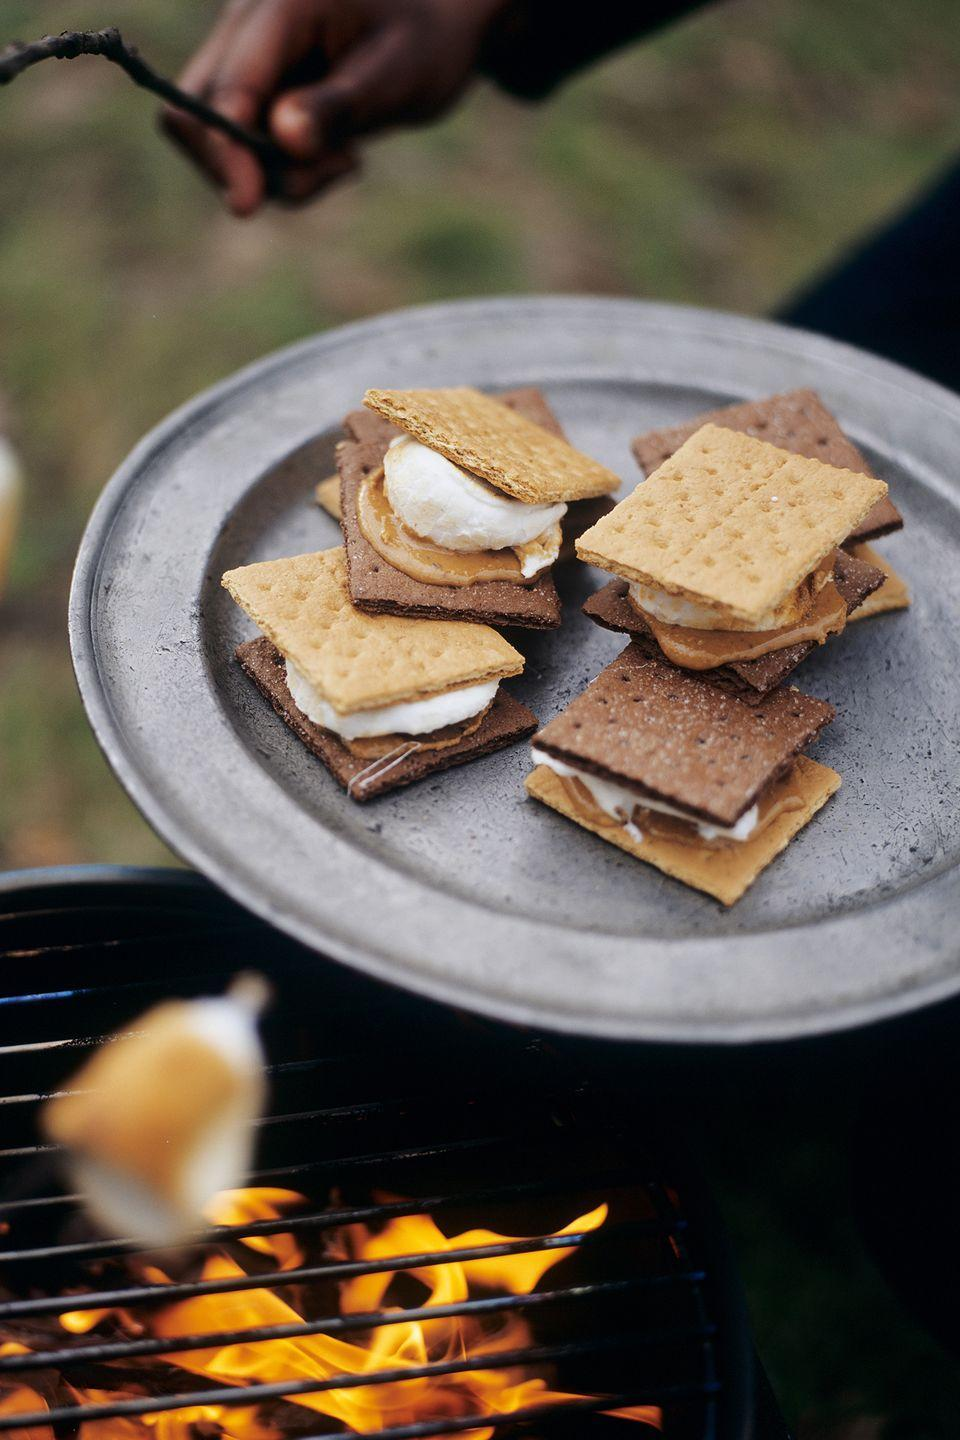 """<p>Grab some skewers and get roasting! Use your marshmallows to make the classic treat or try another recipe <a href=""""https://www.countryliving.com/food-drinks/g2006/smores-dessert-recipes/"""" rel=""""nofollow noopener"""" target=""""_blank"""" data-ylk=""""slk:like s'mores nachos or s'mores brownies"""" class=""""link rapid-noclick-resp"""">like s'mores nachos or s'mores brownies</a>.</p>"""